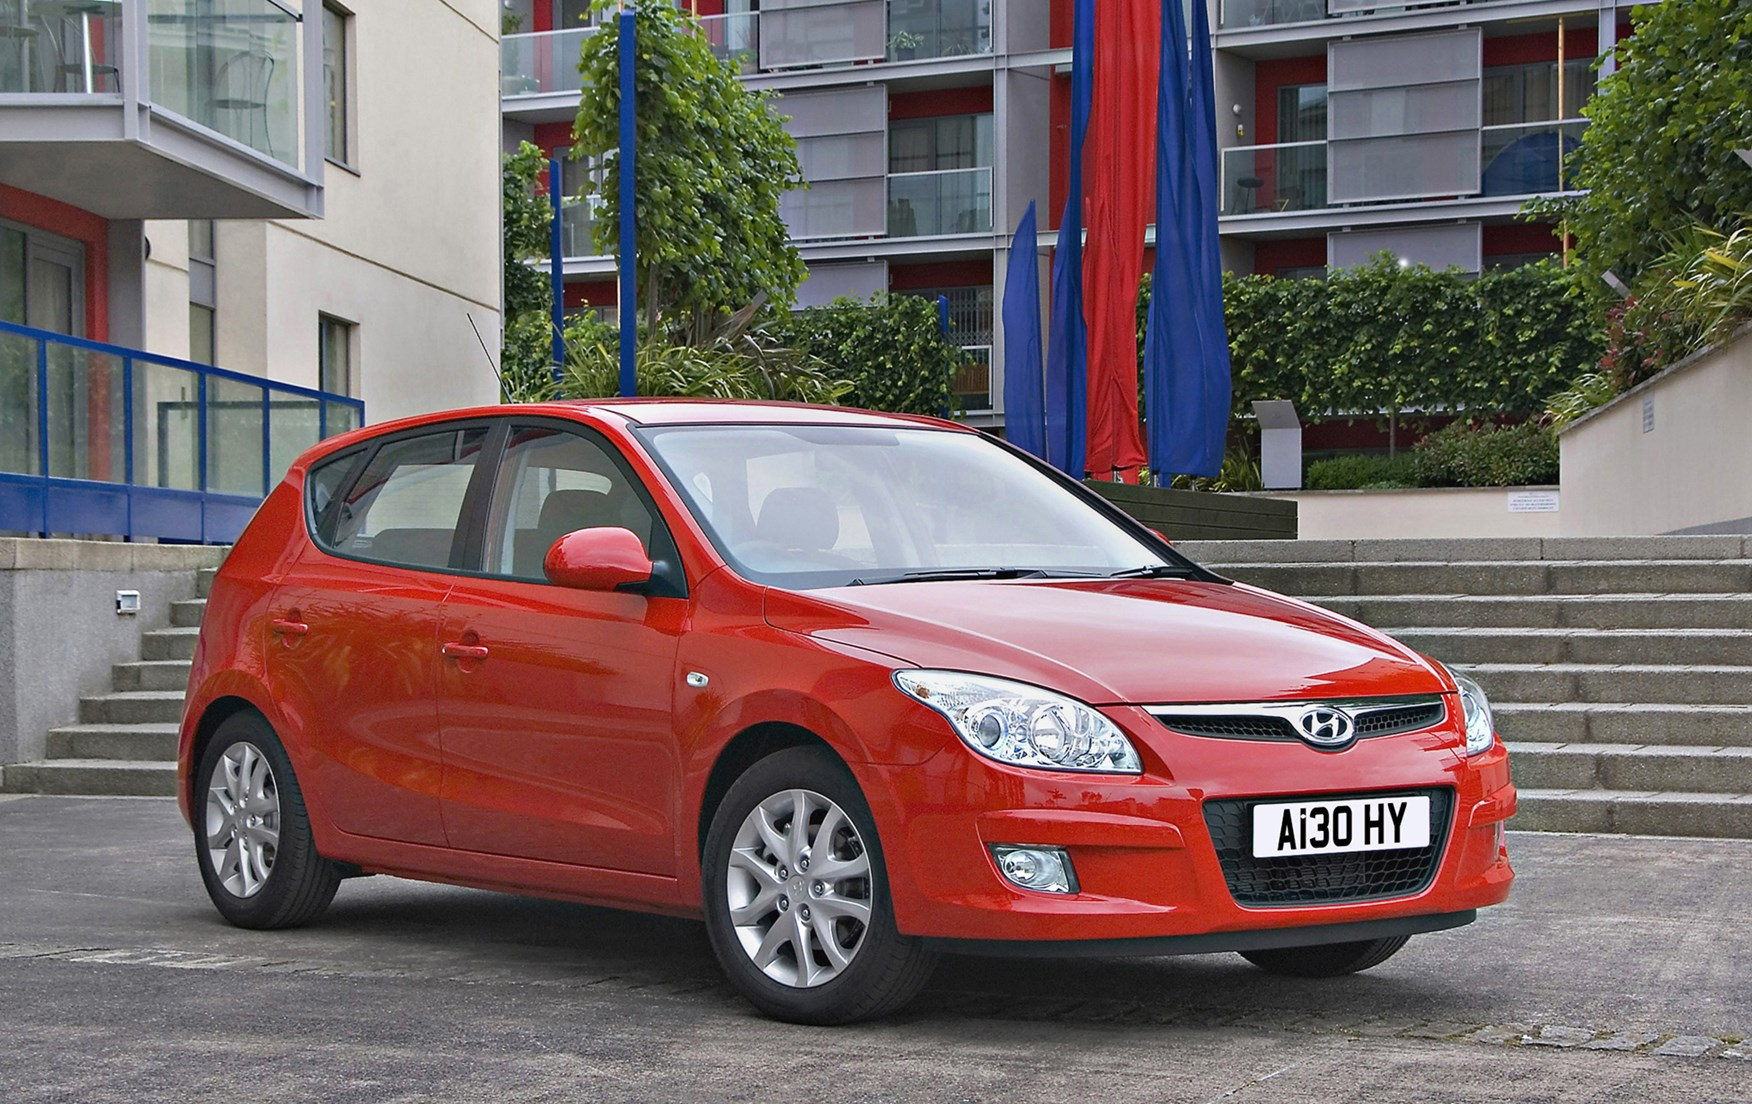 2011 hyundai i30 photos informations articles. Black Bedroom Furniture Sets. Home Design Ideas